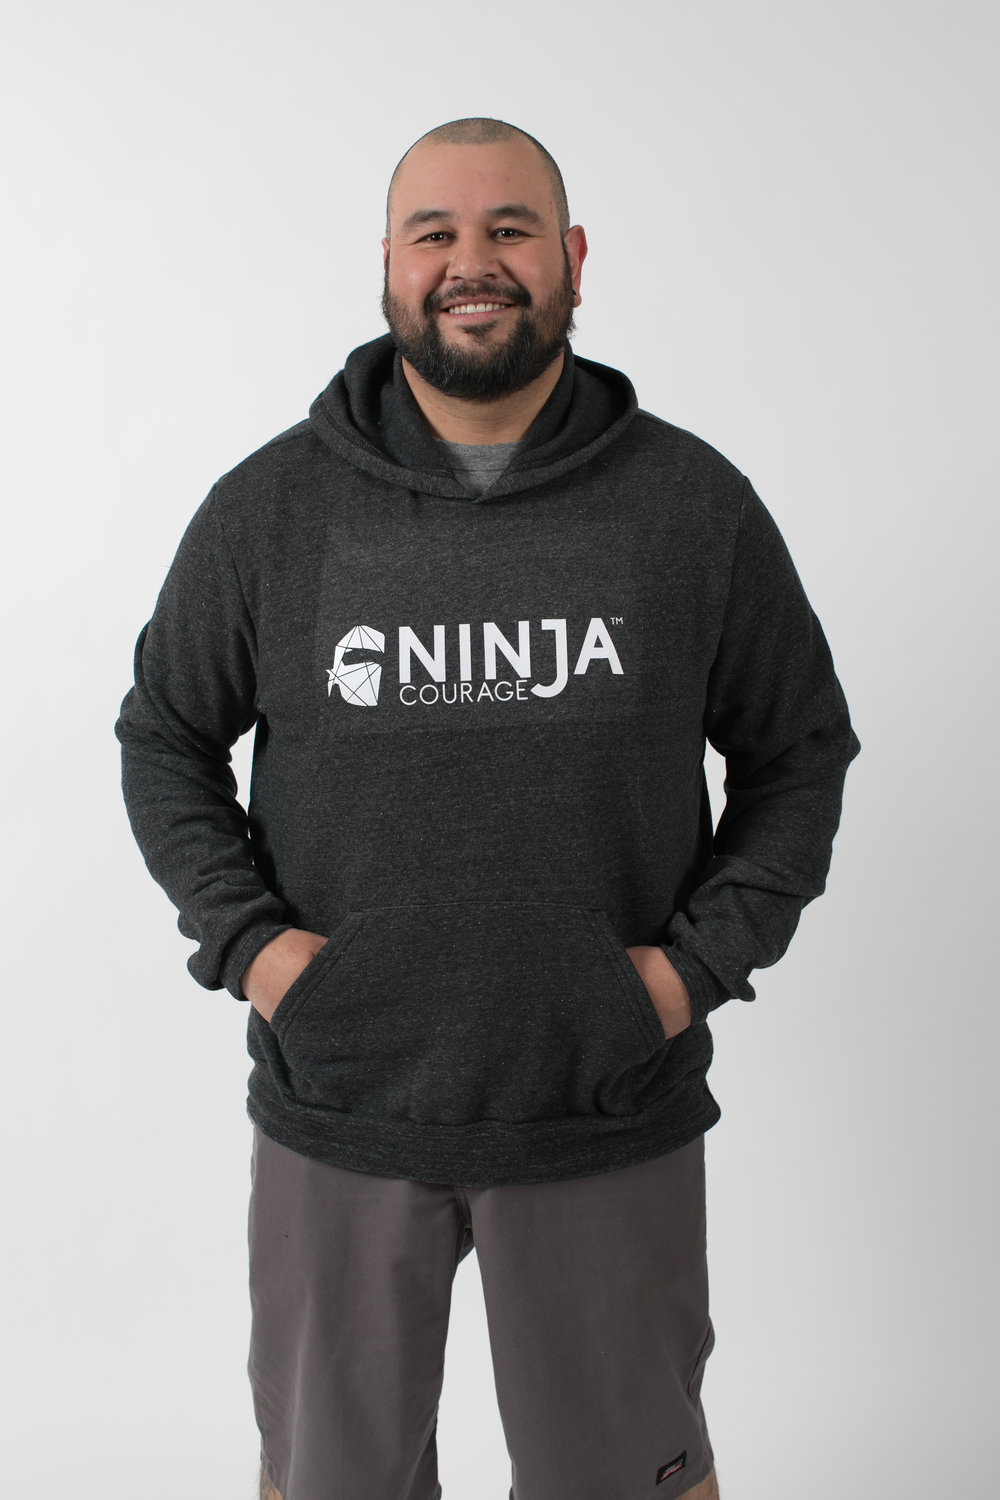 836ed857629 Ninja Courage Challenger Eco-Fleece Pullover Hoodie — Ninja Courage